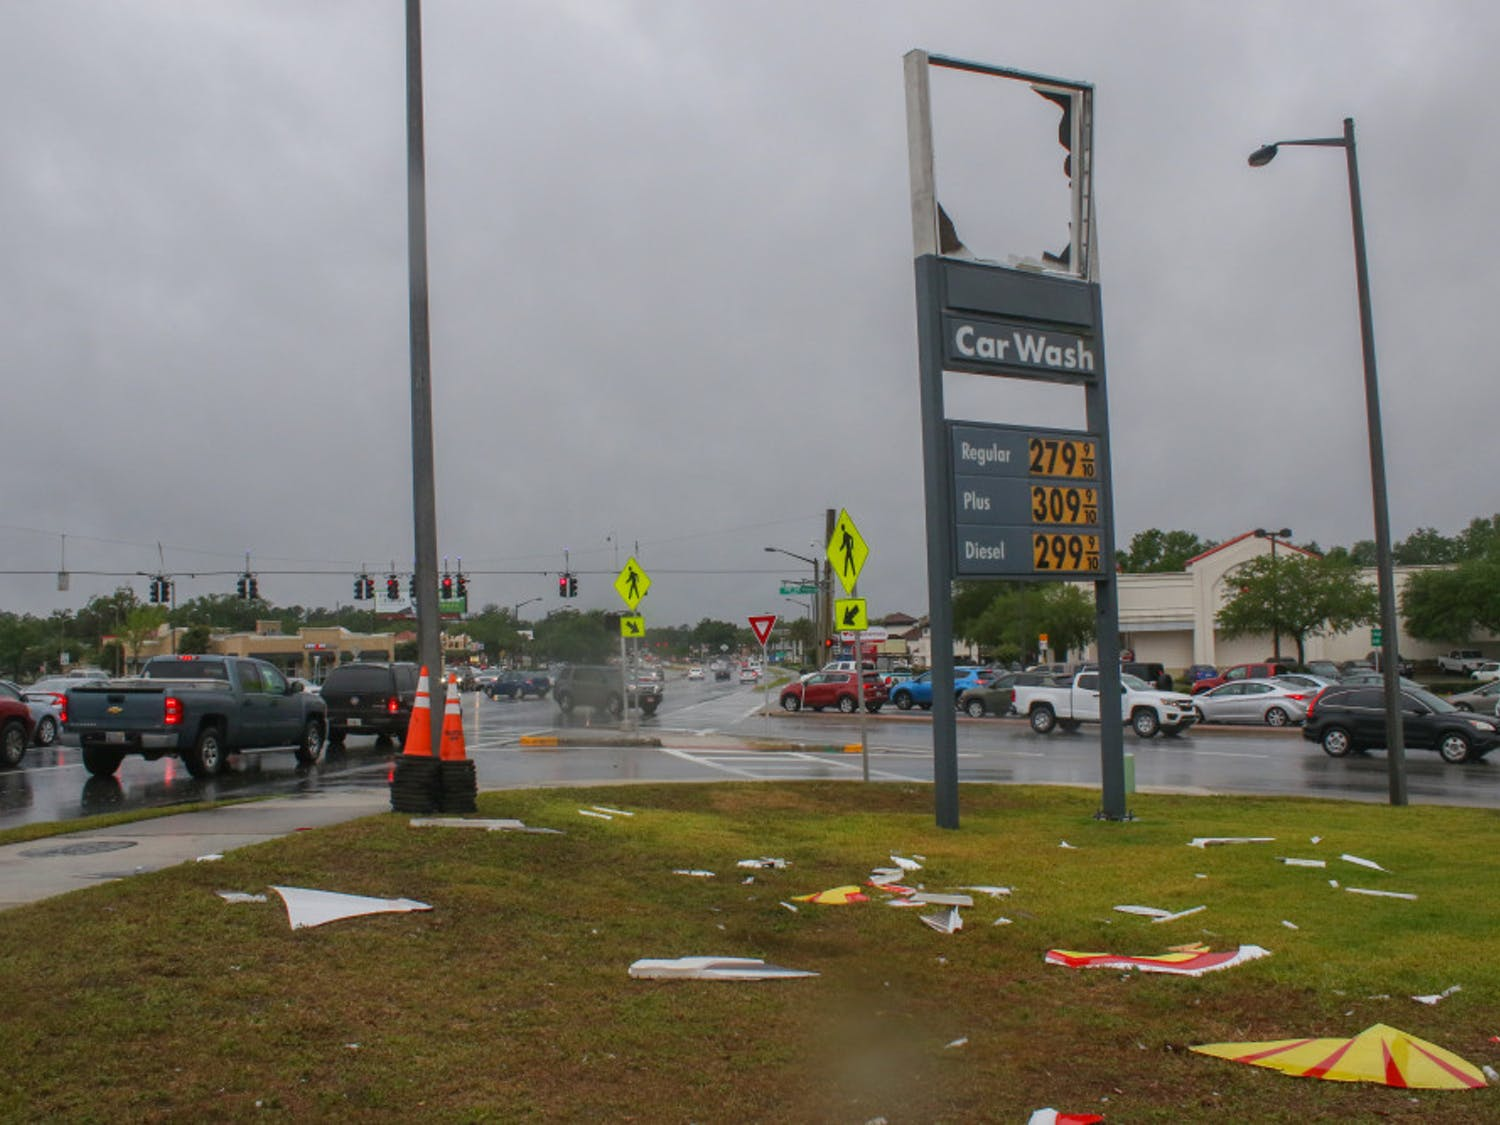 """The Shell sign is scattered across the ground Friday after strong winds blew it down during a storm at the Shell gas station, 3330 SW Archer Road. Daphne Roberson, an employee at the station, said she saw the sign go down around 11 a.m. """"It just all of a sudden happened,"""" she said. """"I looked up and it was flying across the air."""""""